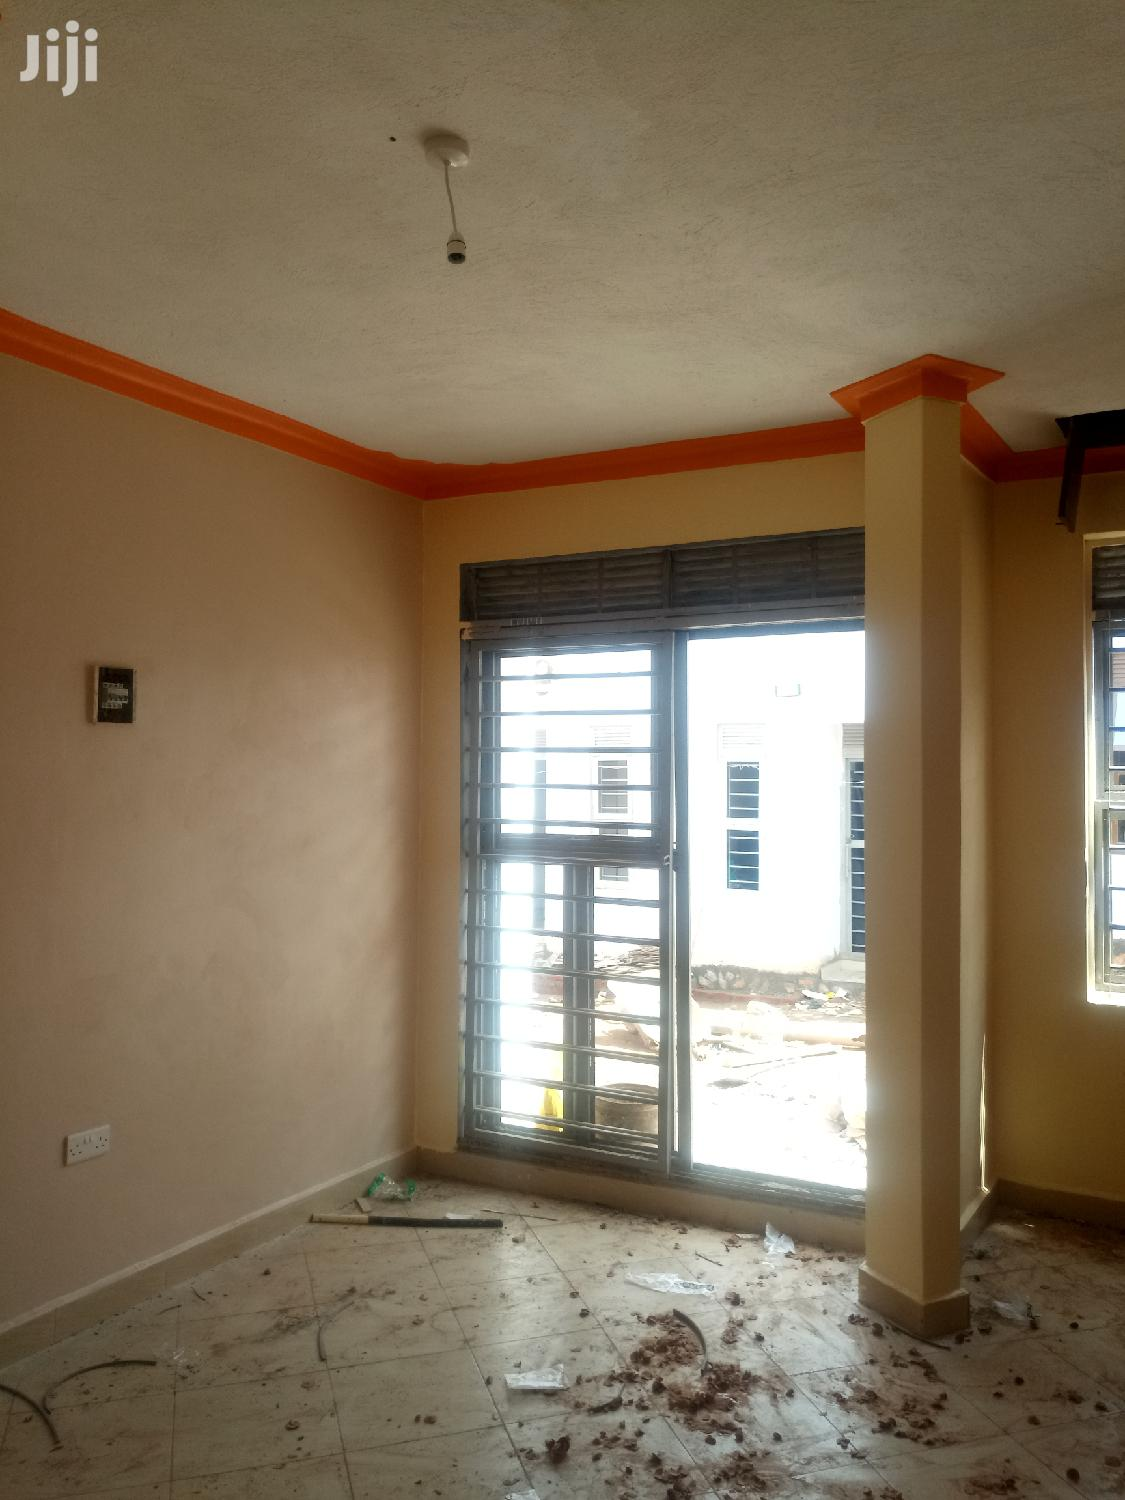 Kisaasi Single Room House For Rent | Houses & Apartments For Rent for sale in Kampala, Central Region, Uganda